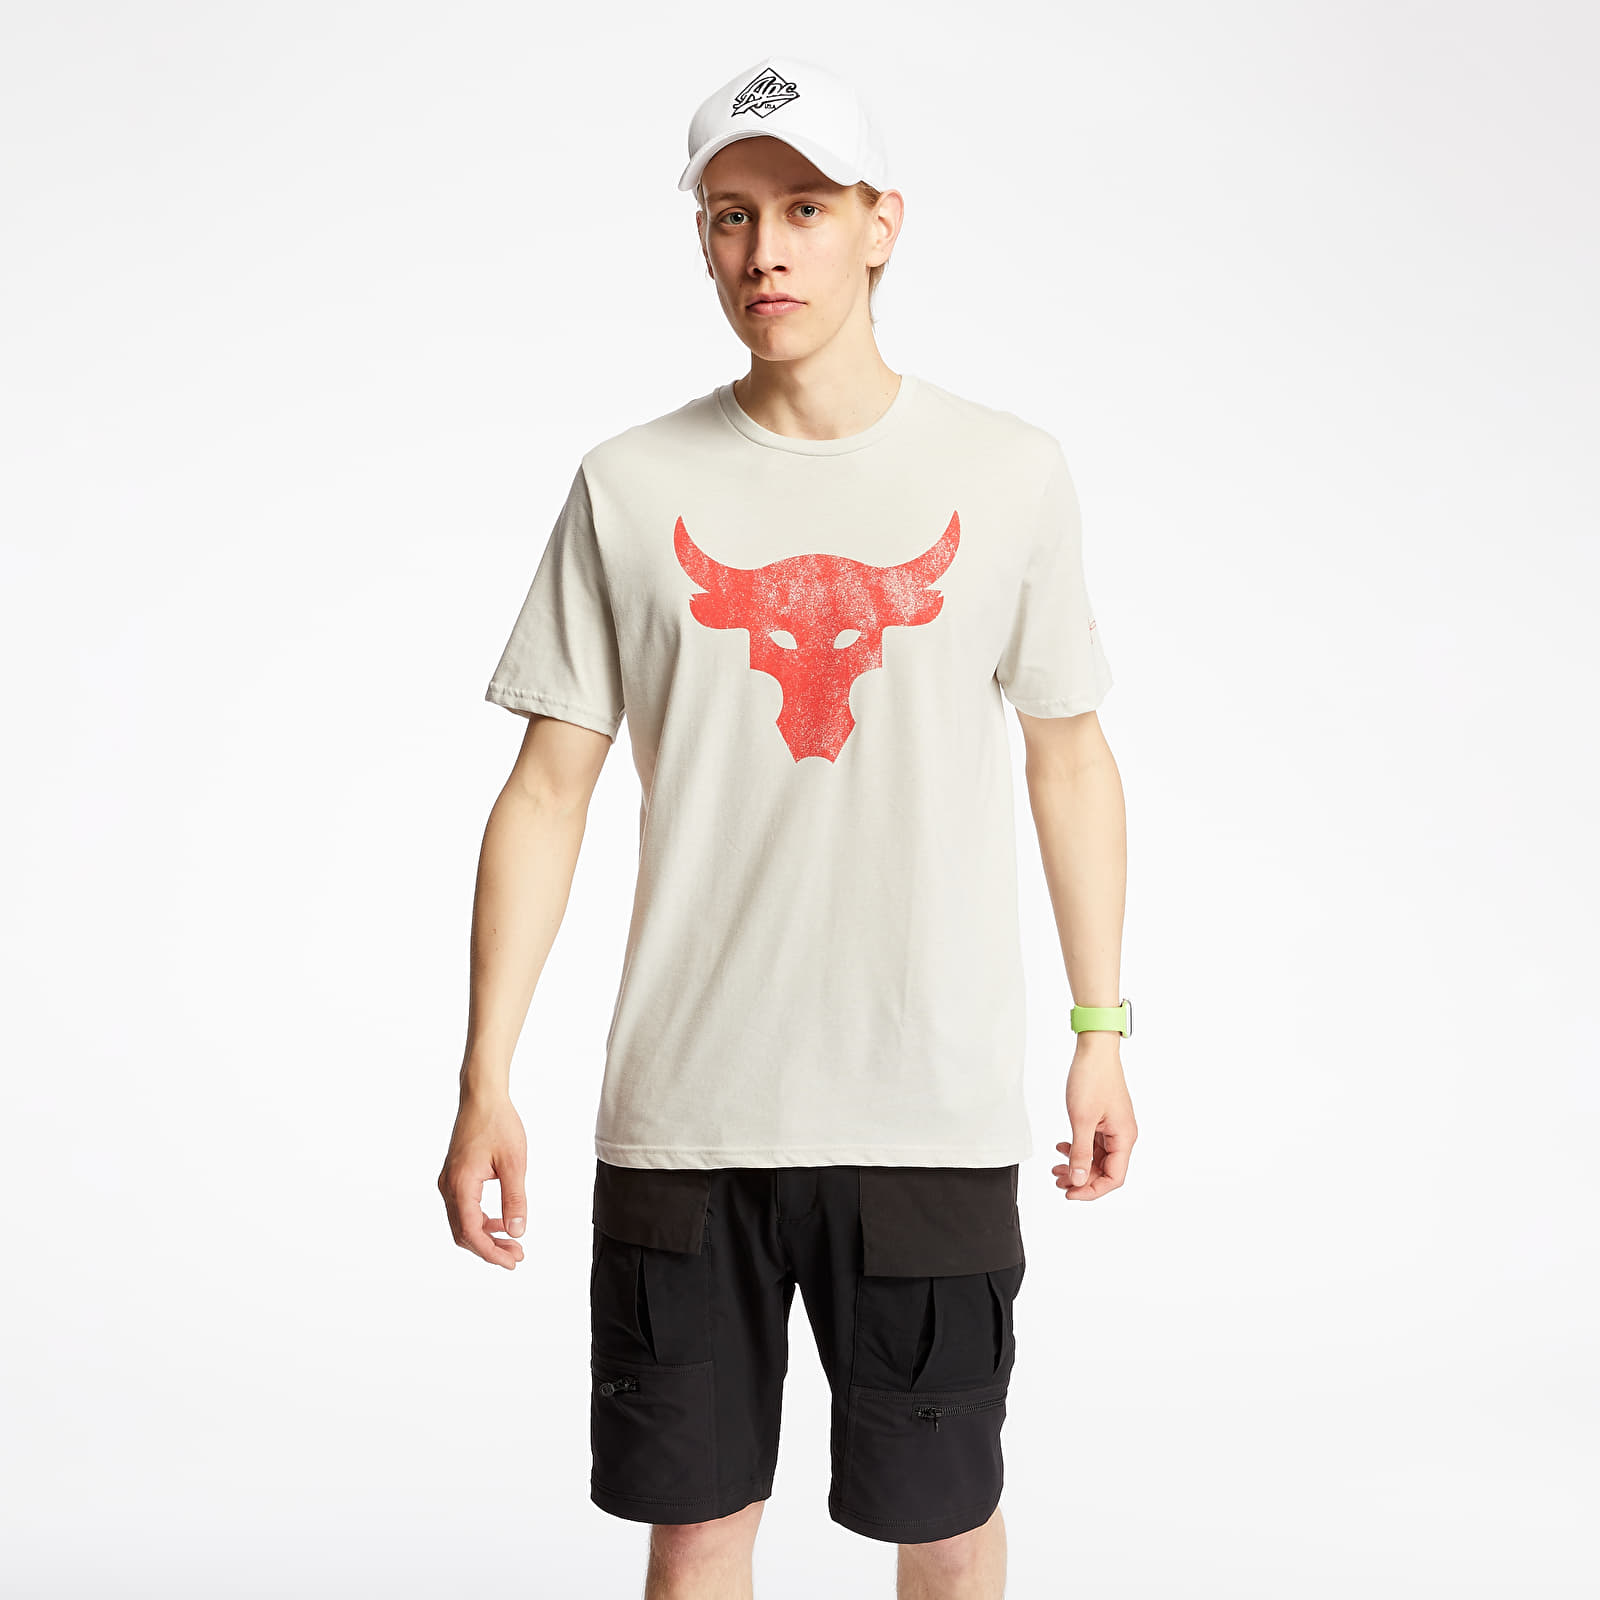 T-shirts Under Armour Project Rock Brahma Bull Tee Summit White/ Versa Red